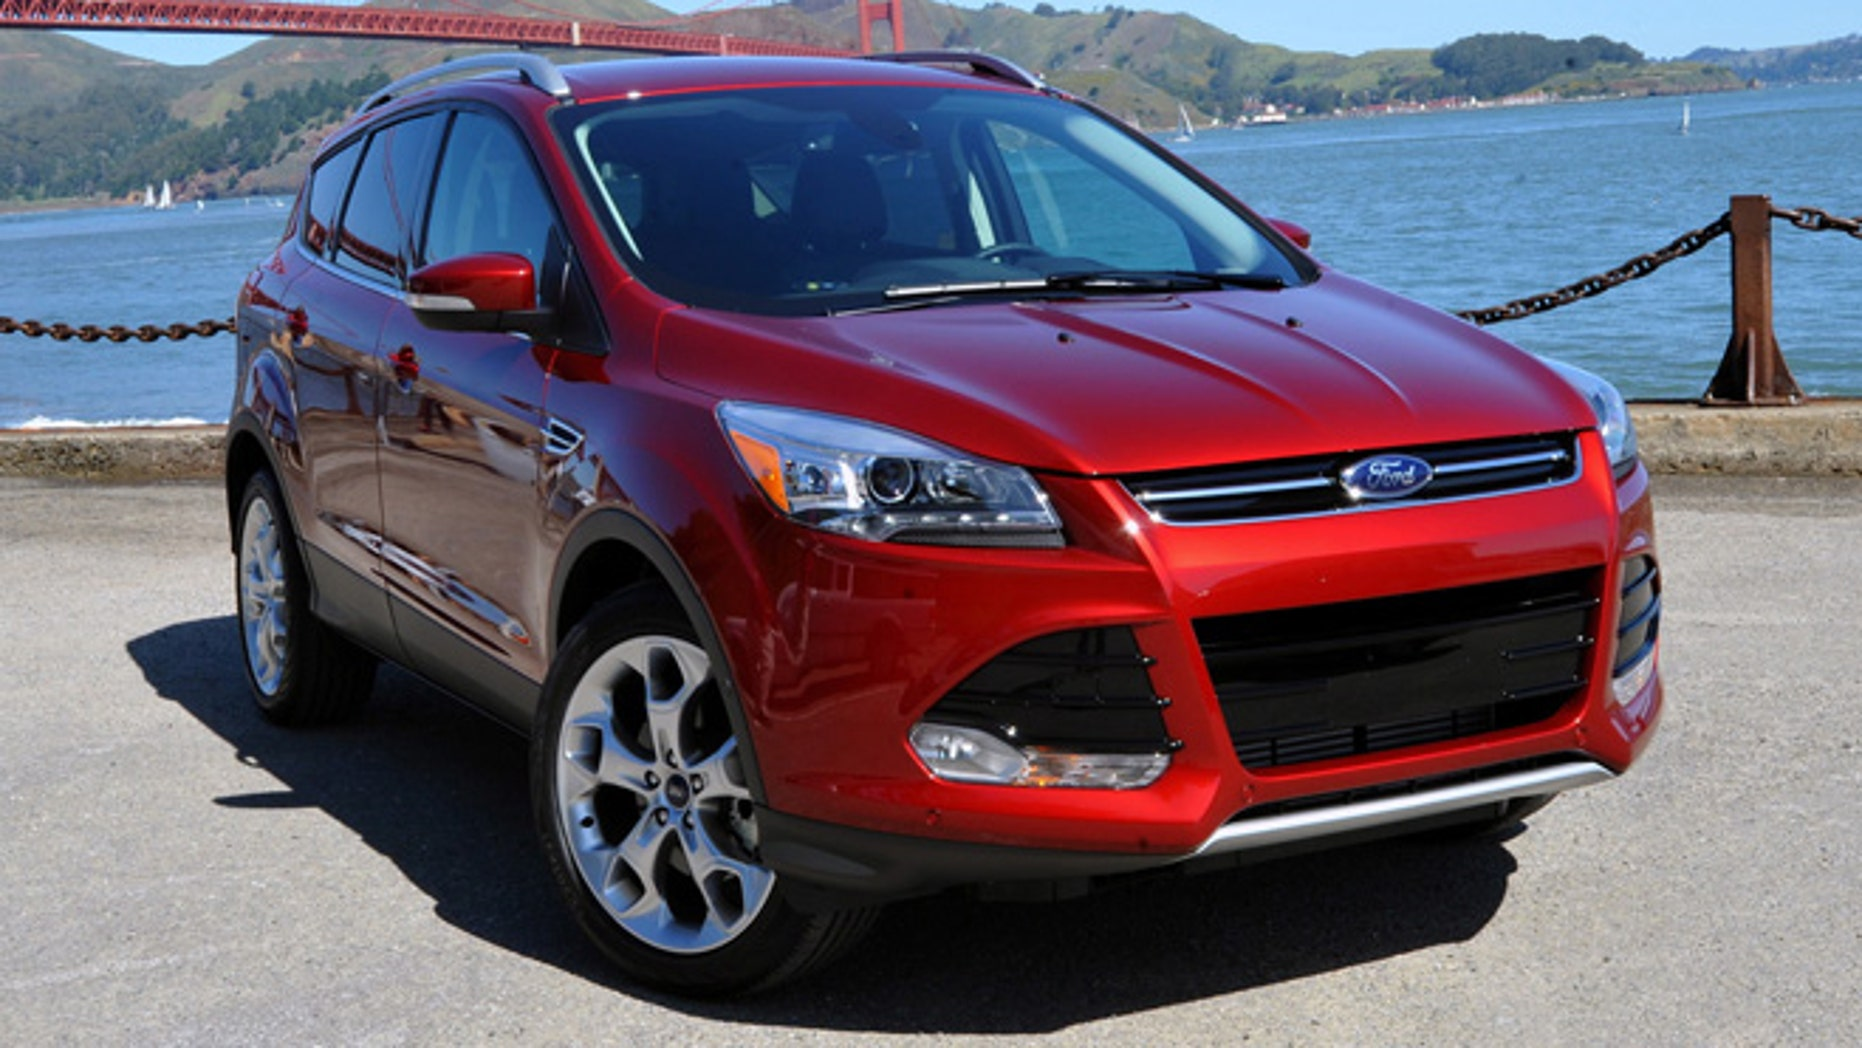 89,000 2013 Ford Escapes were recalled for fire risk.